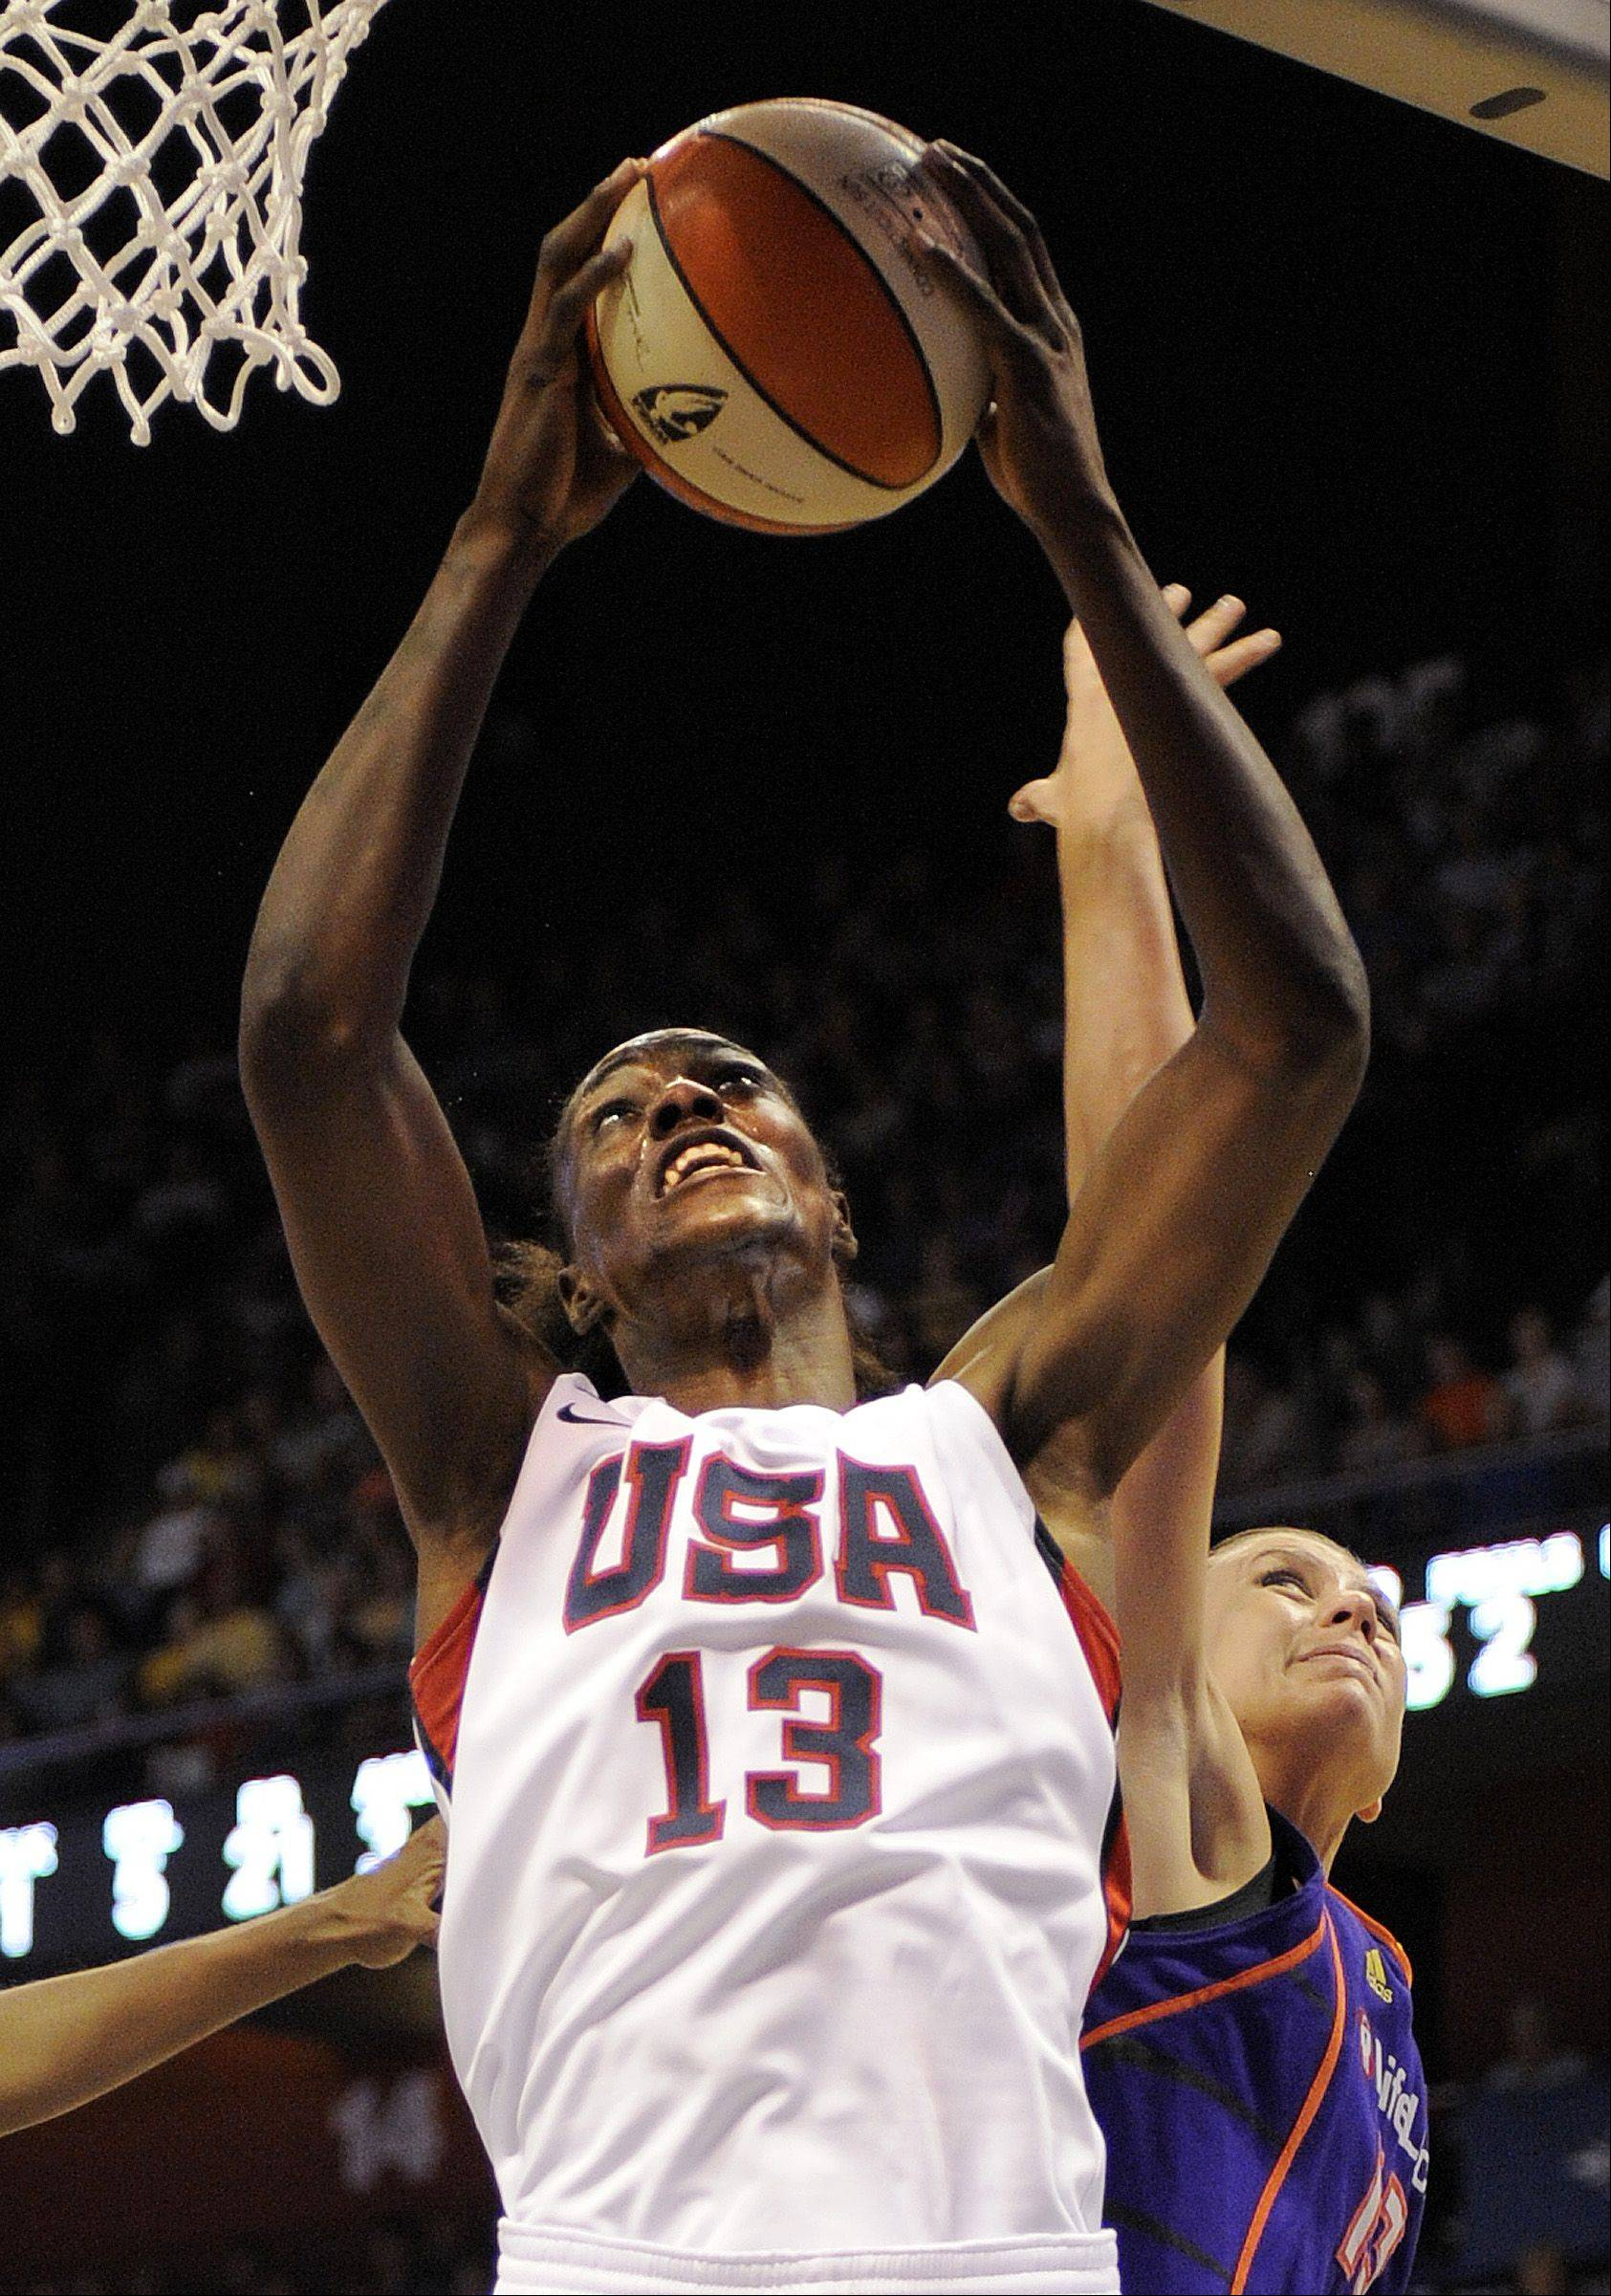 Team USA's Sylvia Fowles grabs a rebound over WNBA All-Stars' Penny Taylor during the second half of the USA's 99-72 victory in their basketball game in Uncasville, Conn., on Saturday, July 10, 2010. Fowles scored a game-high 23 points and had eight rebounds in the game.